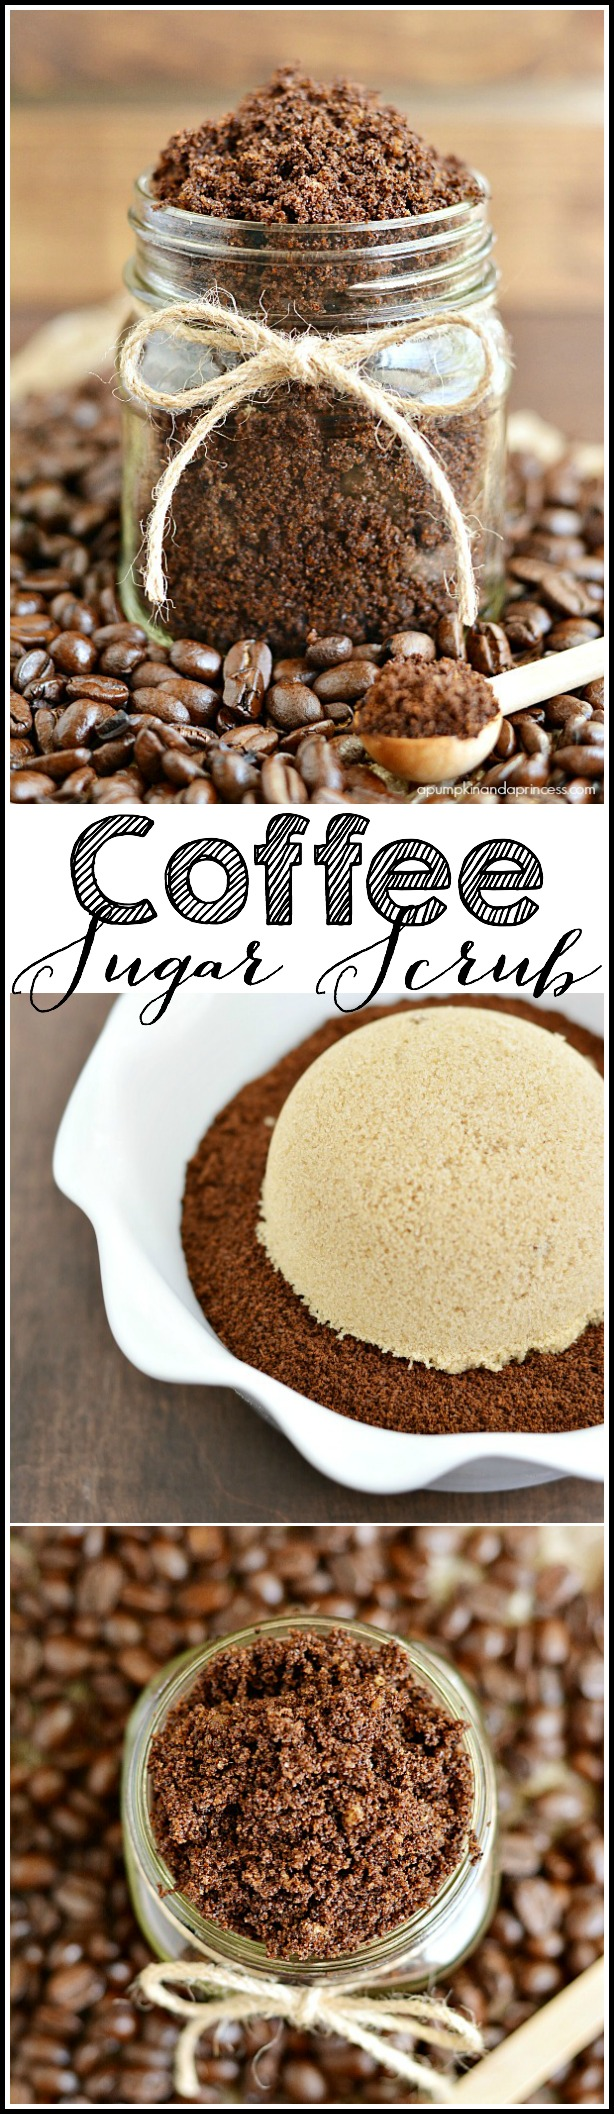 DIY Coffee Sugar Scrub recipe made with nourishing oils - great handmade gift idea!